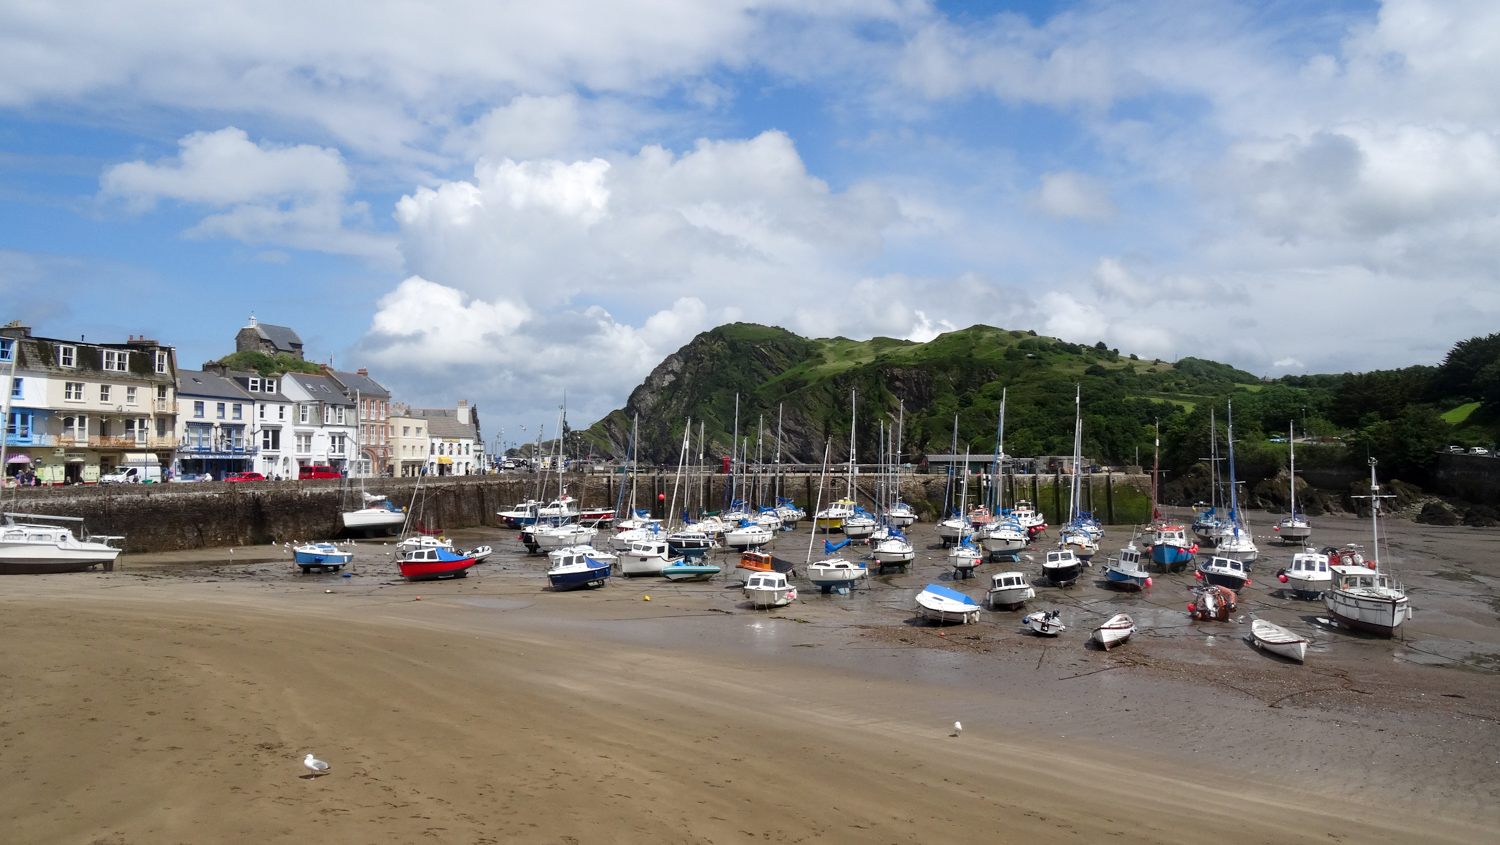 Ilfracombe harbour town